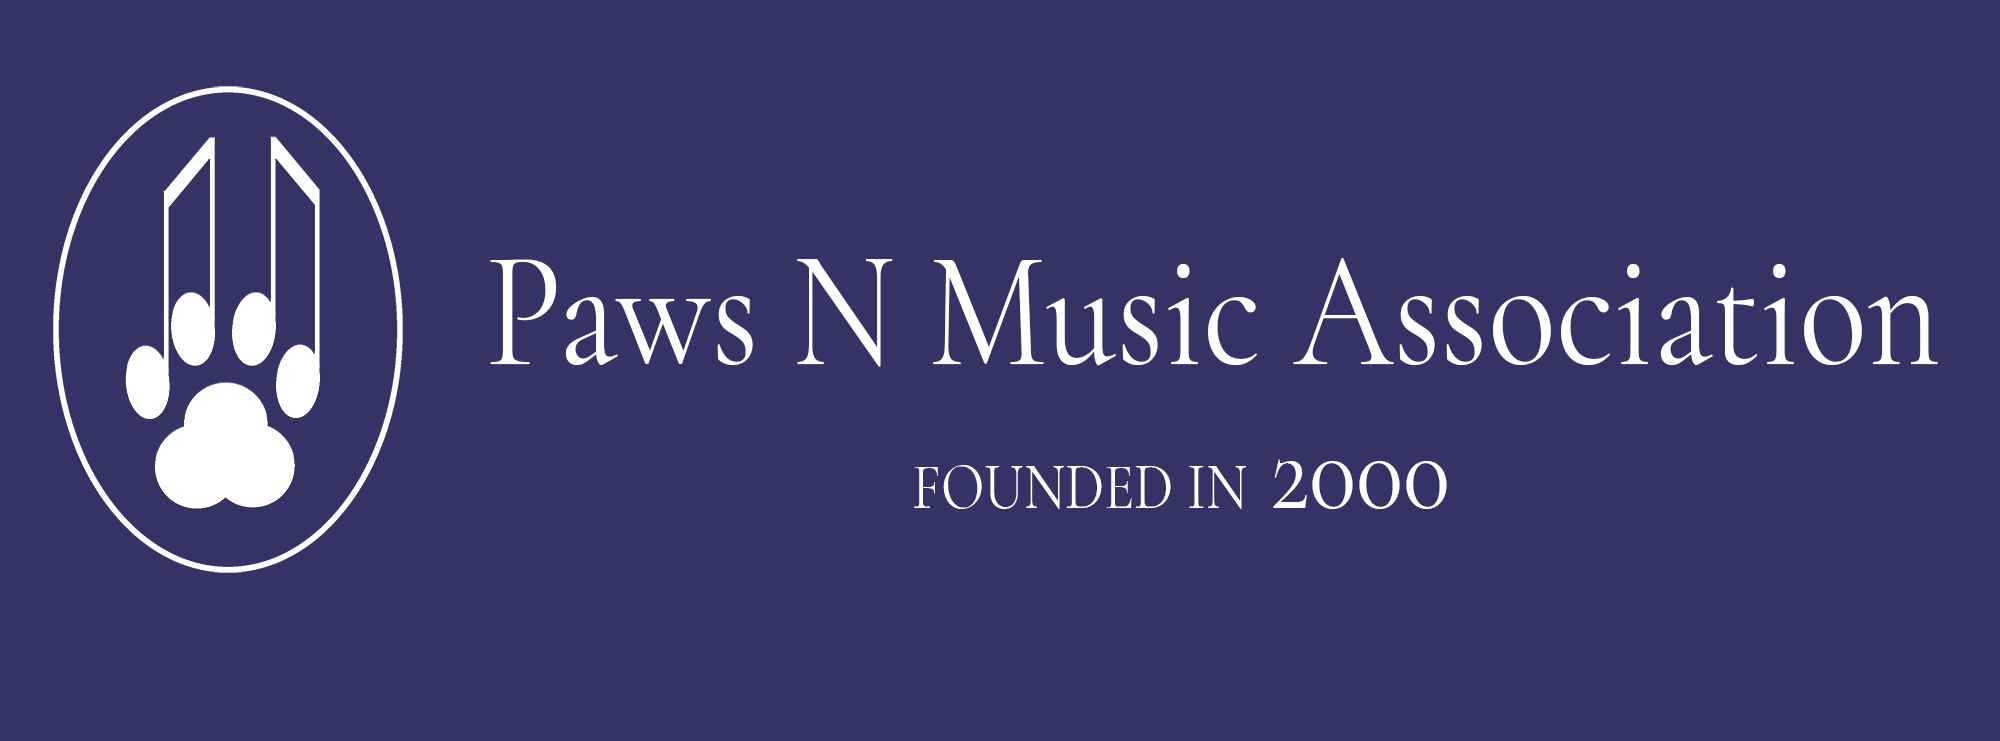 paws-n-music.co.uk